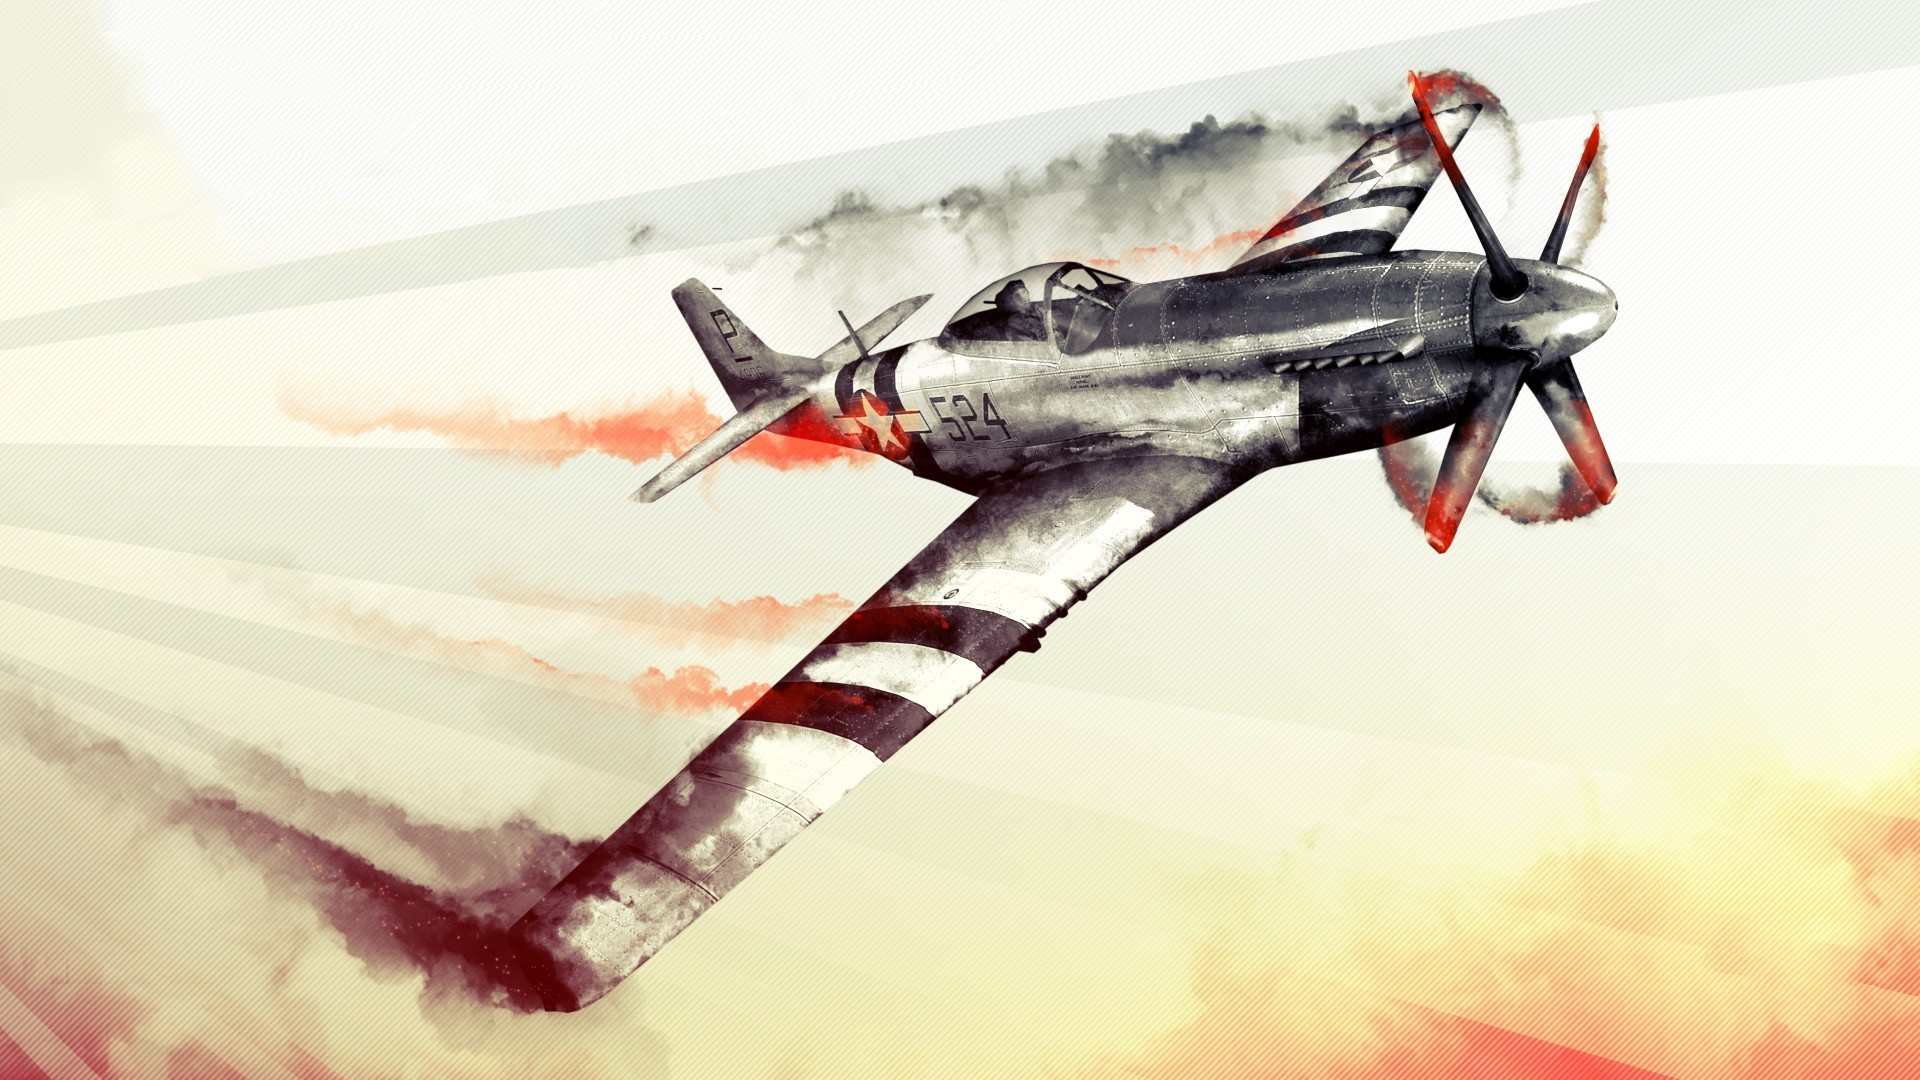 General jet fighter watercolor World War II aircraft Ford Mustang  War Thunder North American P